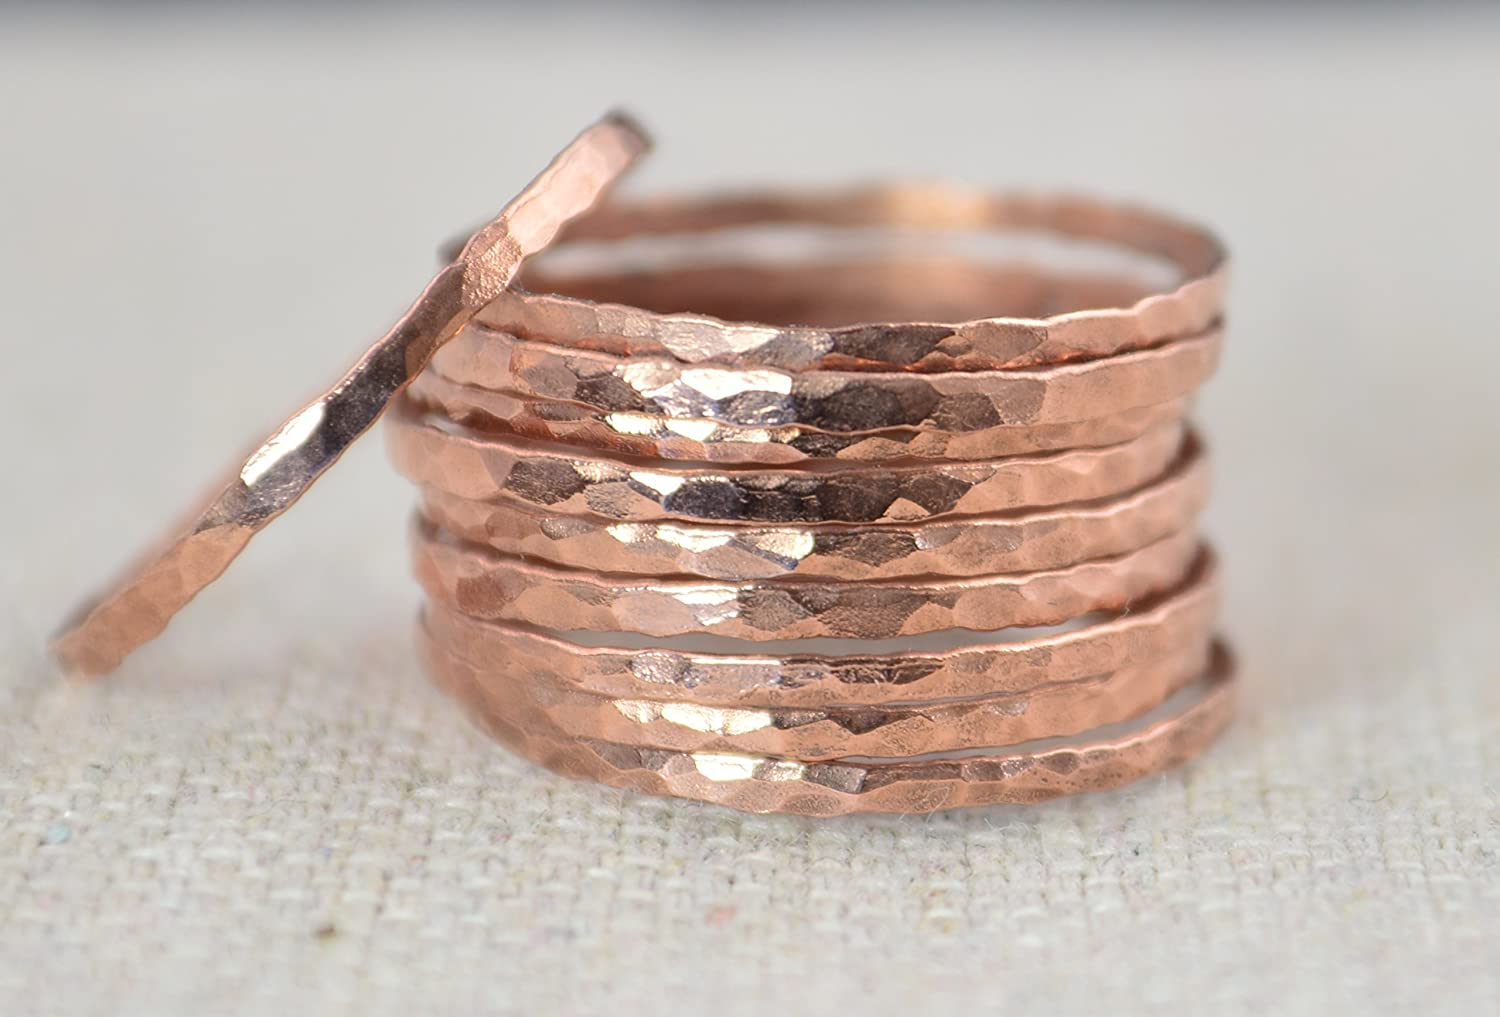 B01660RQEA Super Thin Copper Stackable Ring (Sold Individually) 81uoDLGO-cL